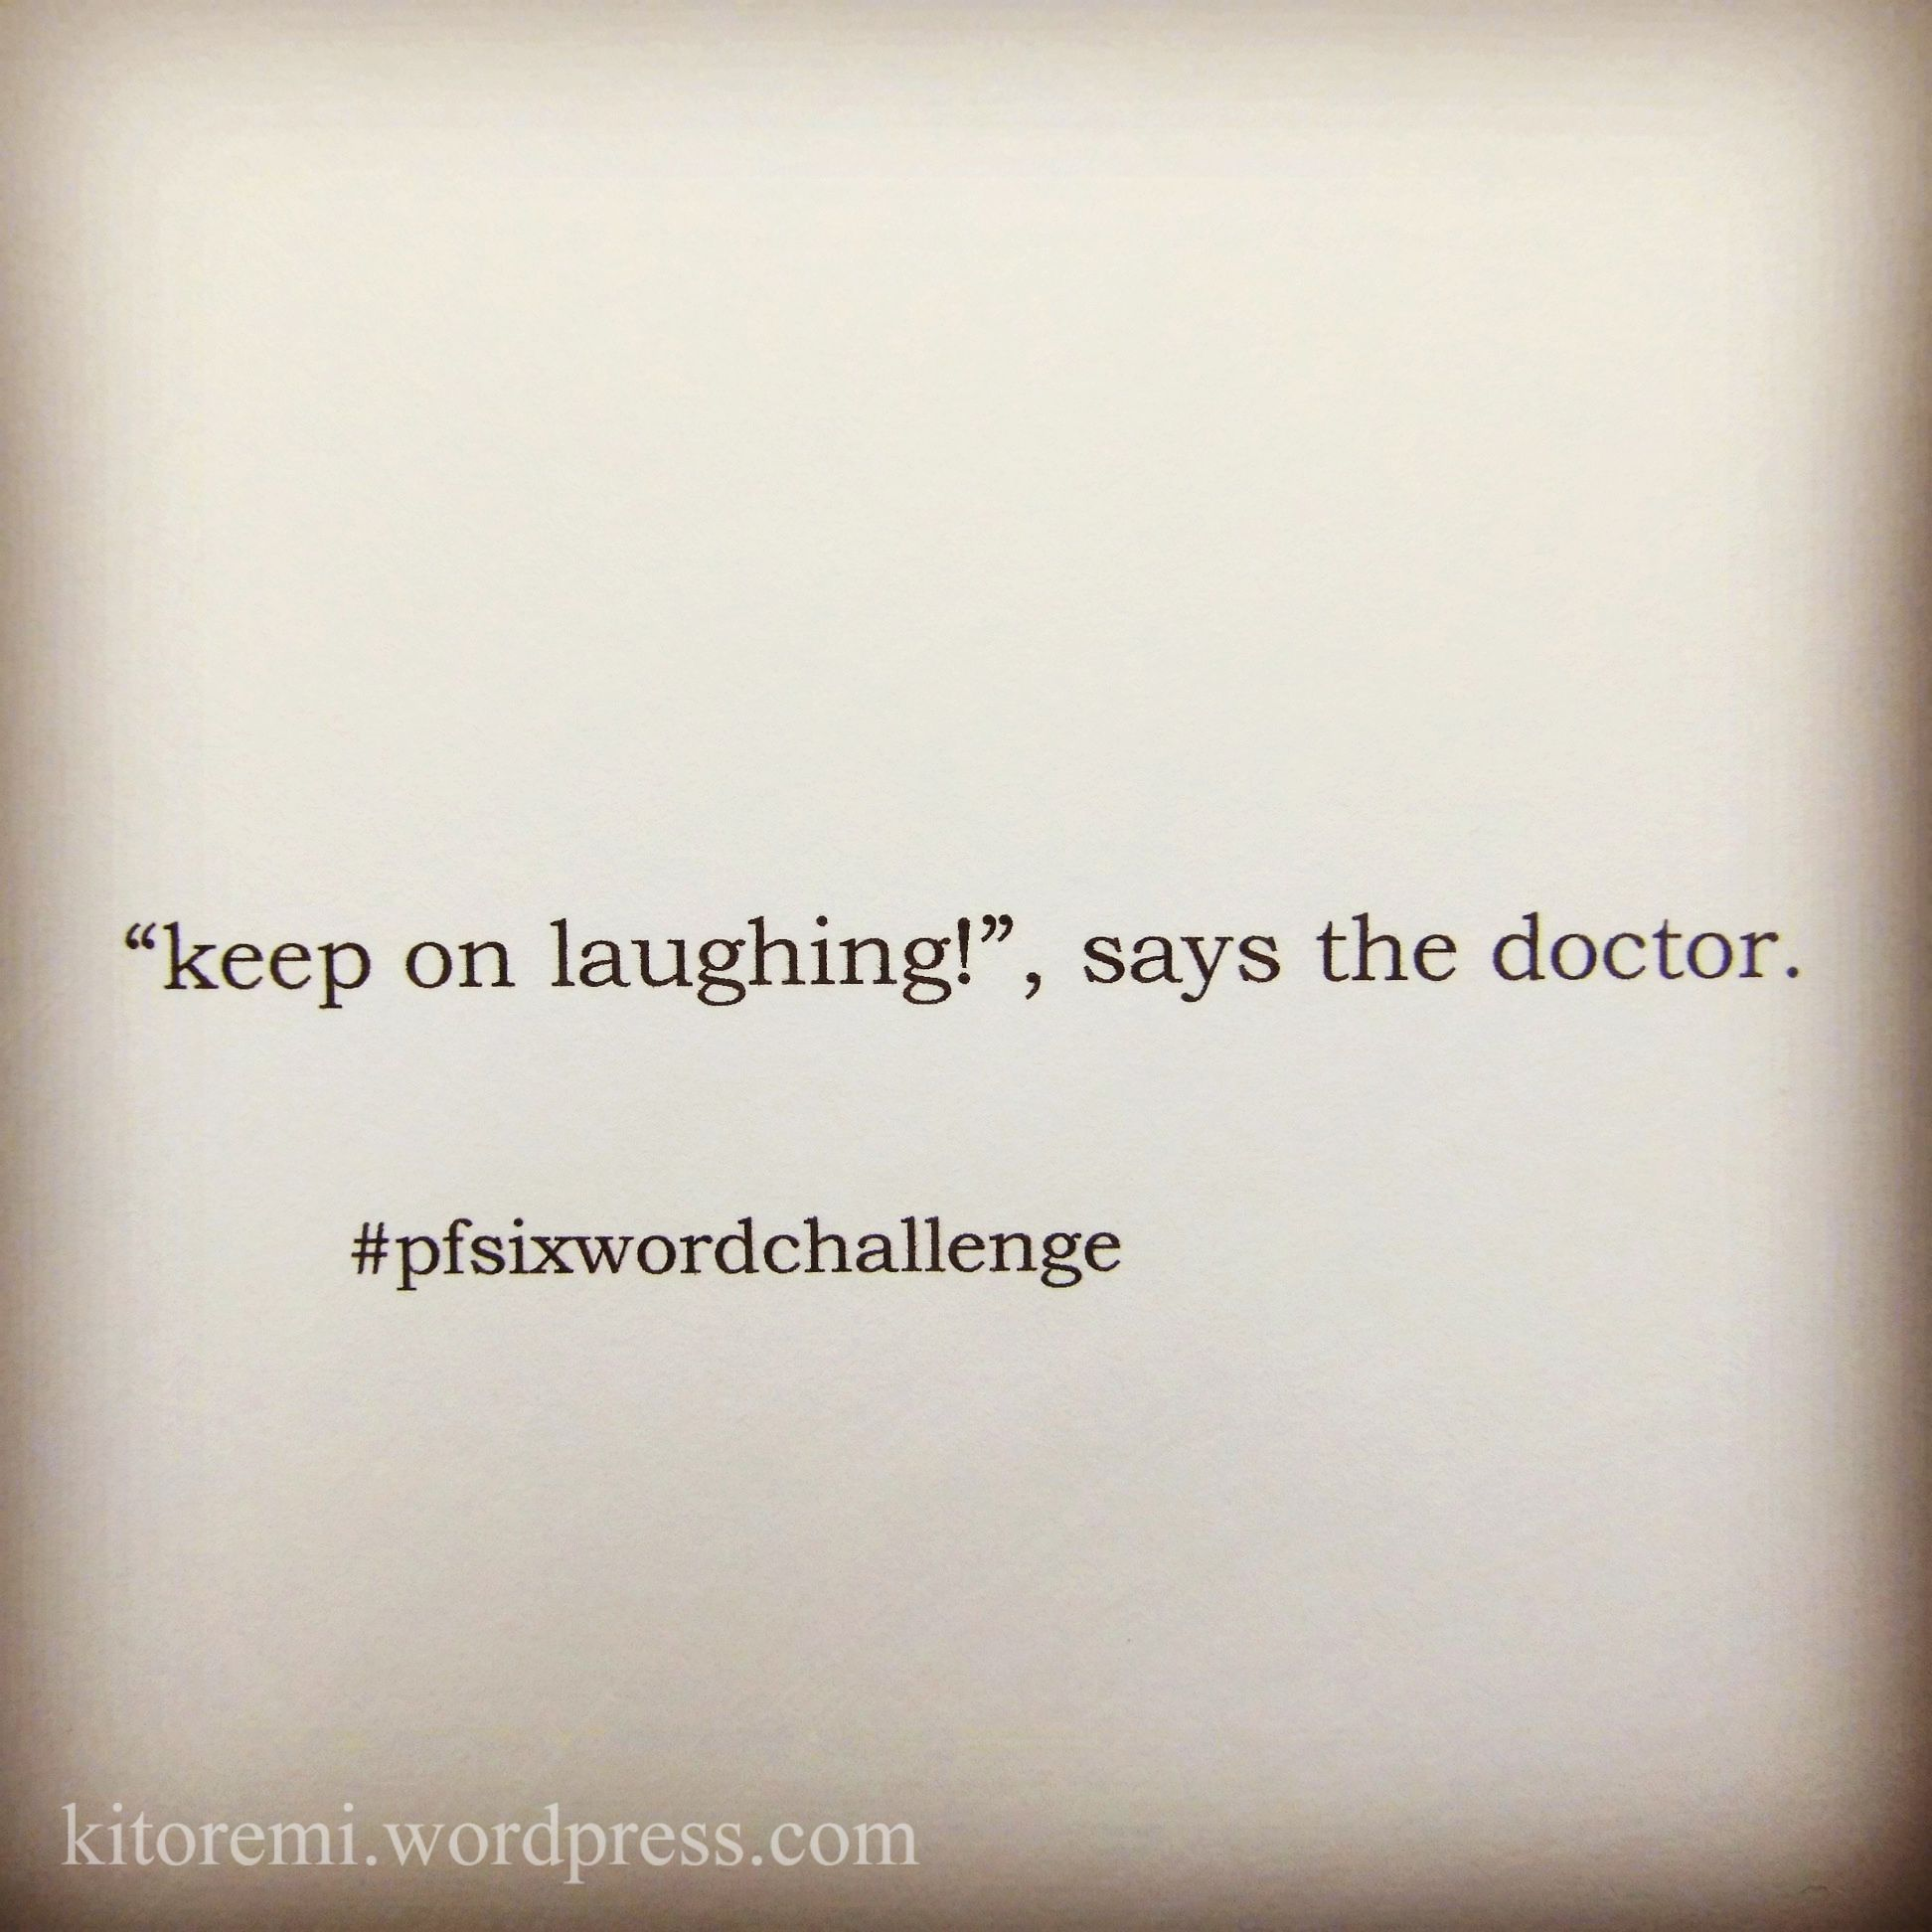 schreiben: six-word-story #3 | Wise words, Poem and Inspirational